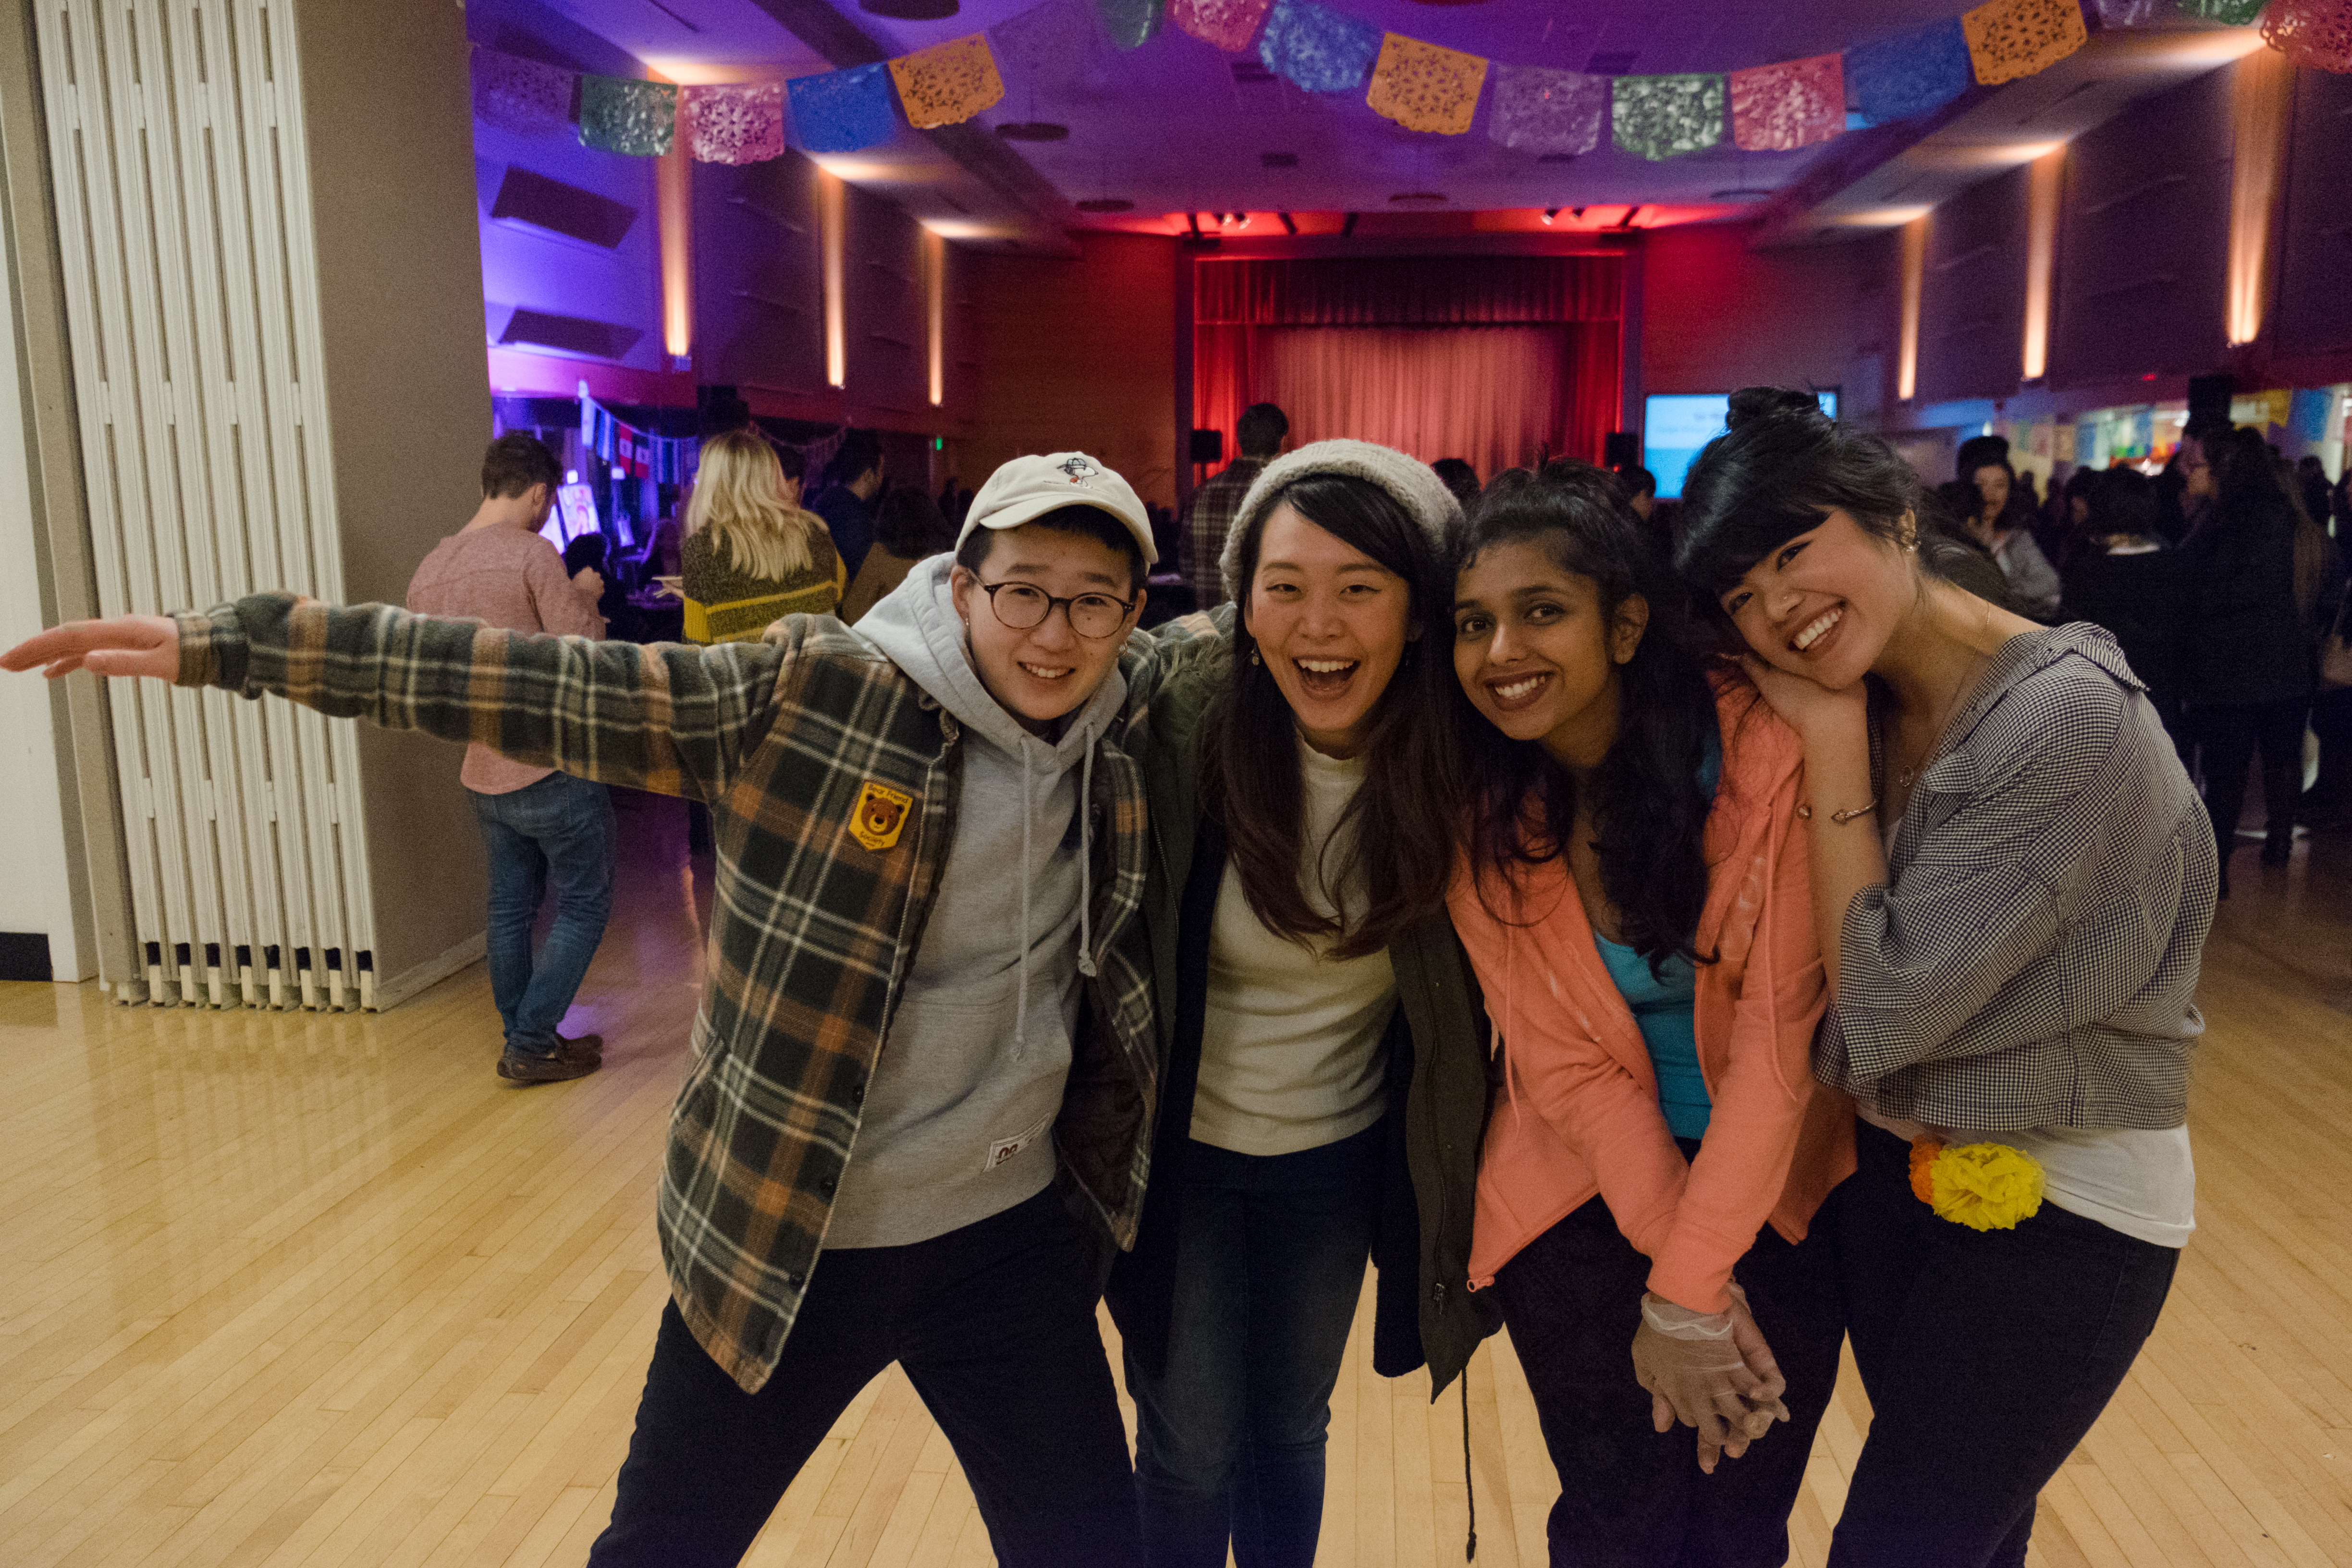 Culture Night at PSU, Winter 2017